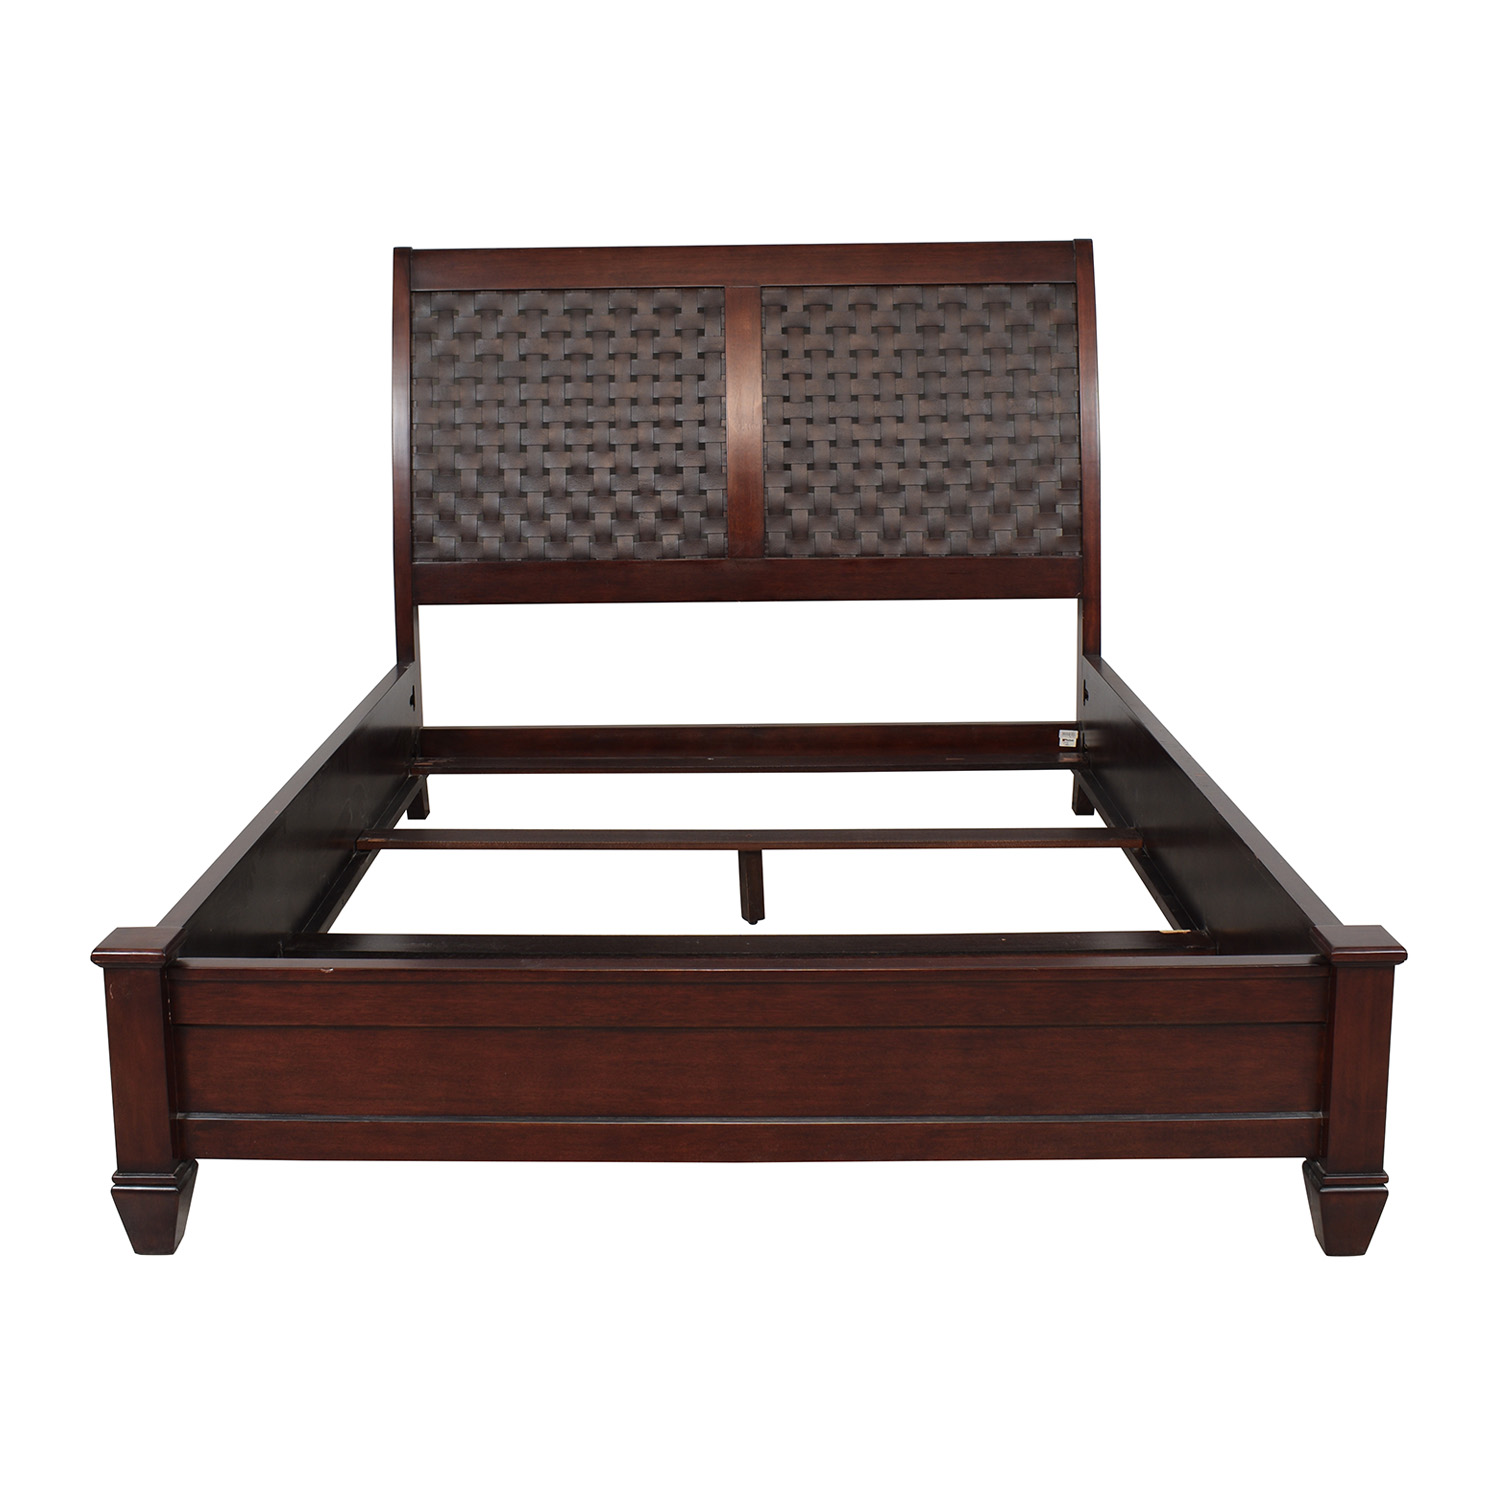 Lane Furniture Lane Furniture Woven Queen Bed for sale